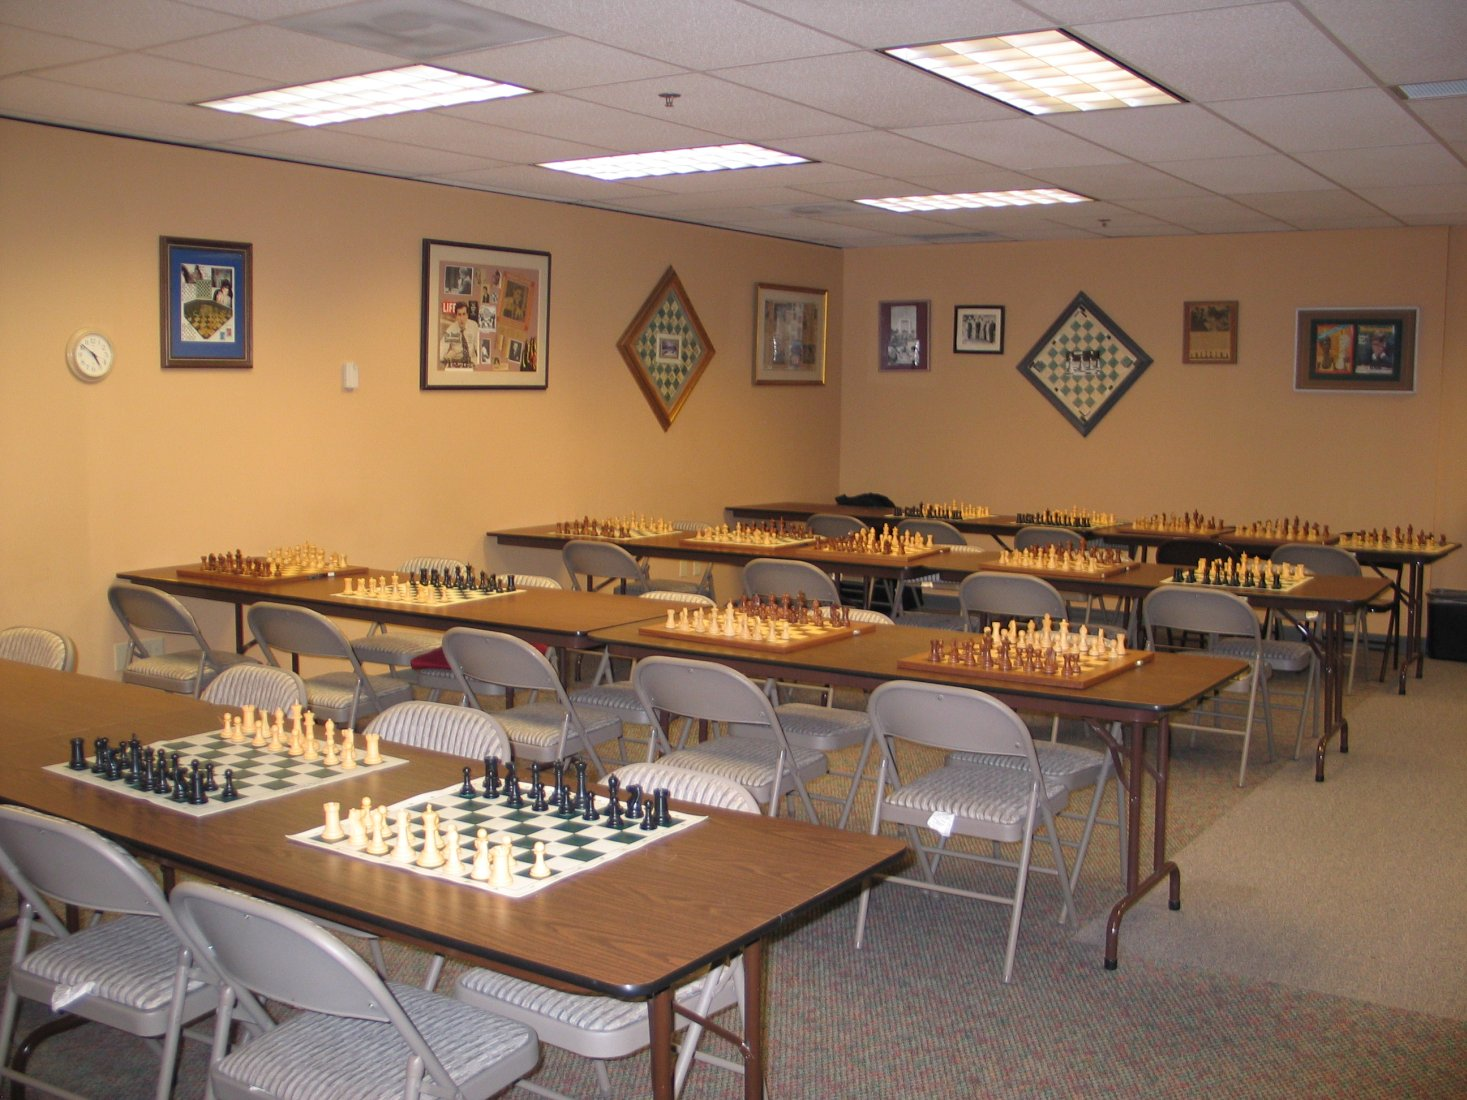 Playing Room of Seattle Chess Club